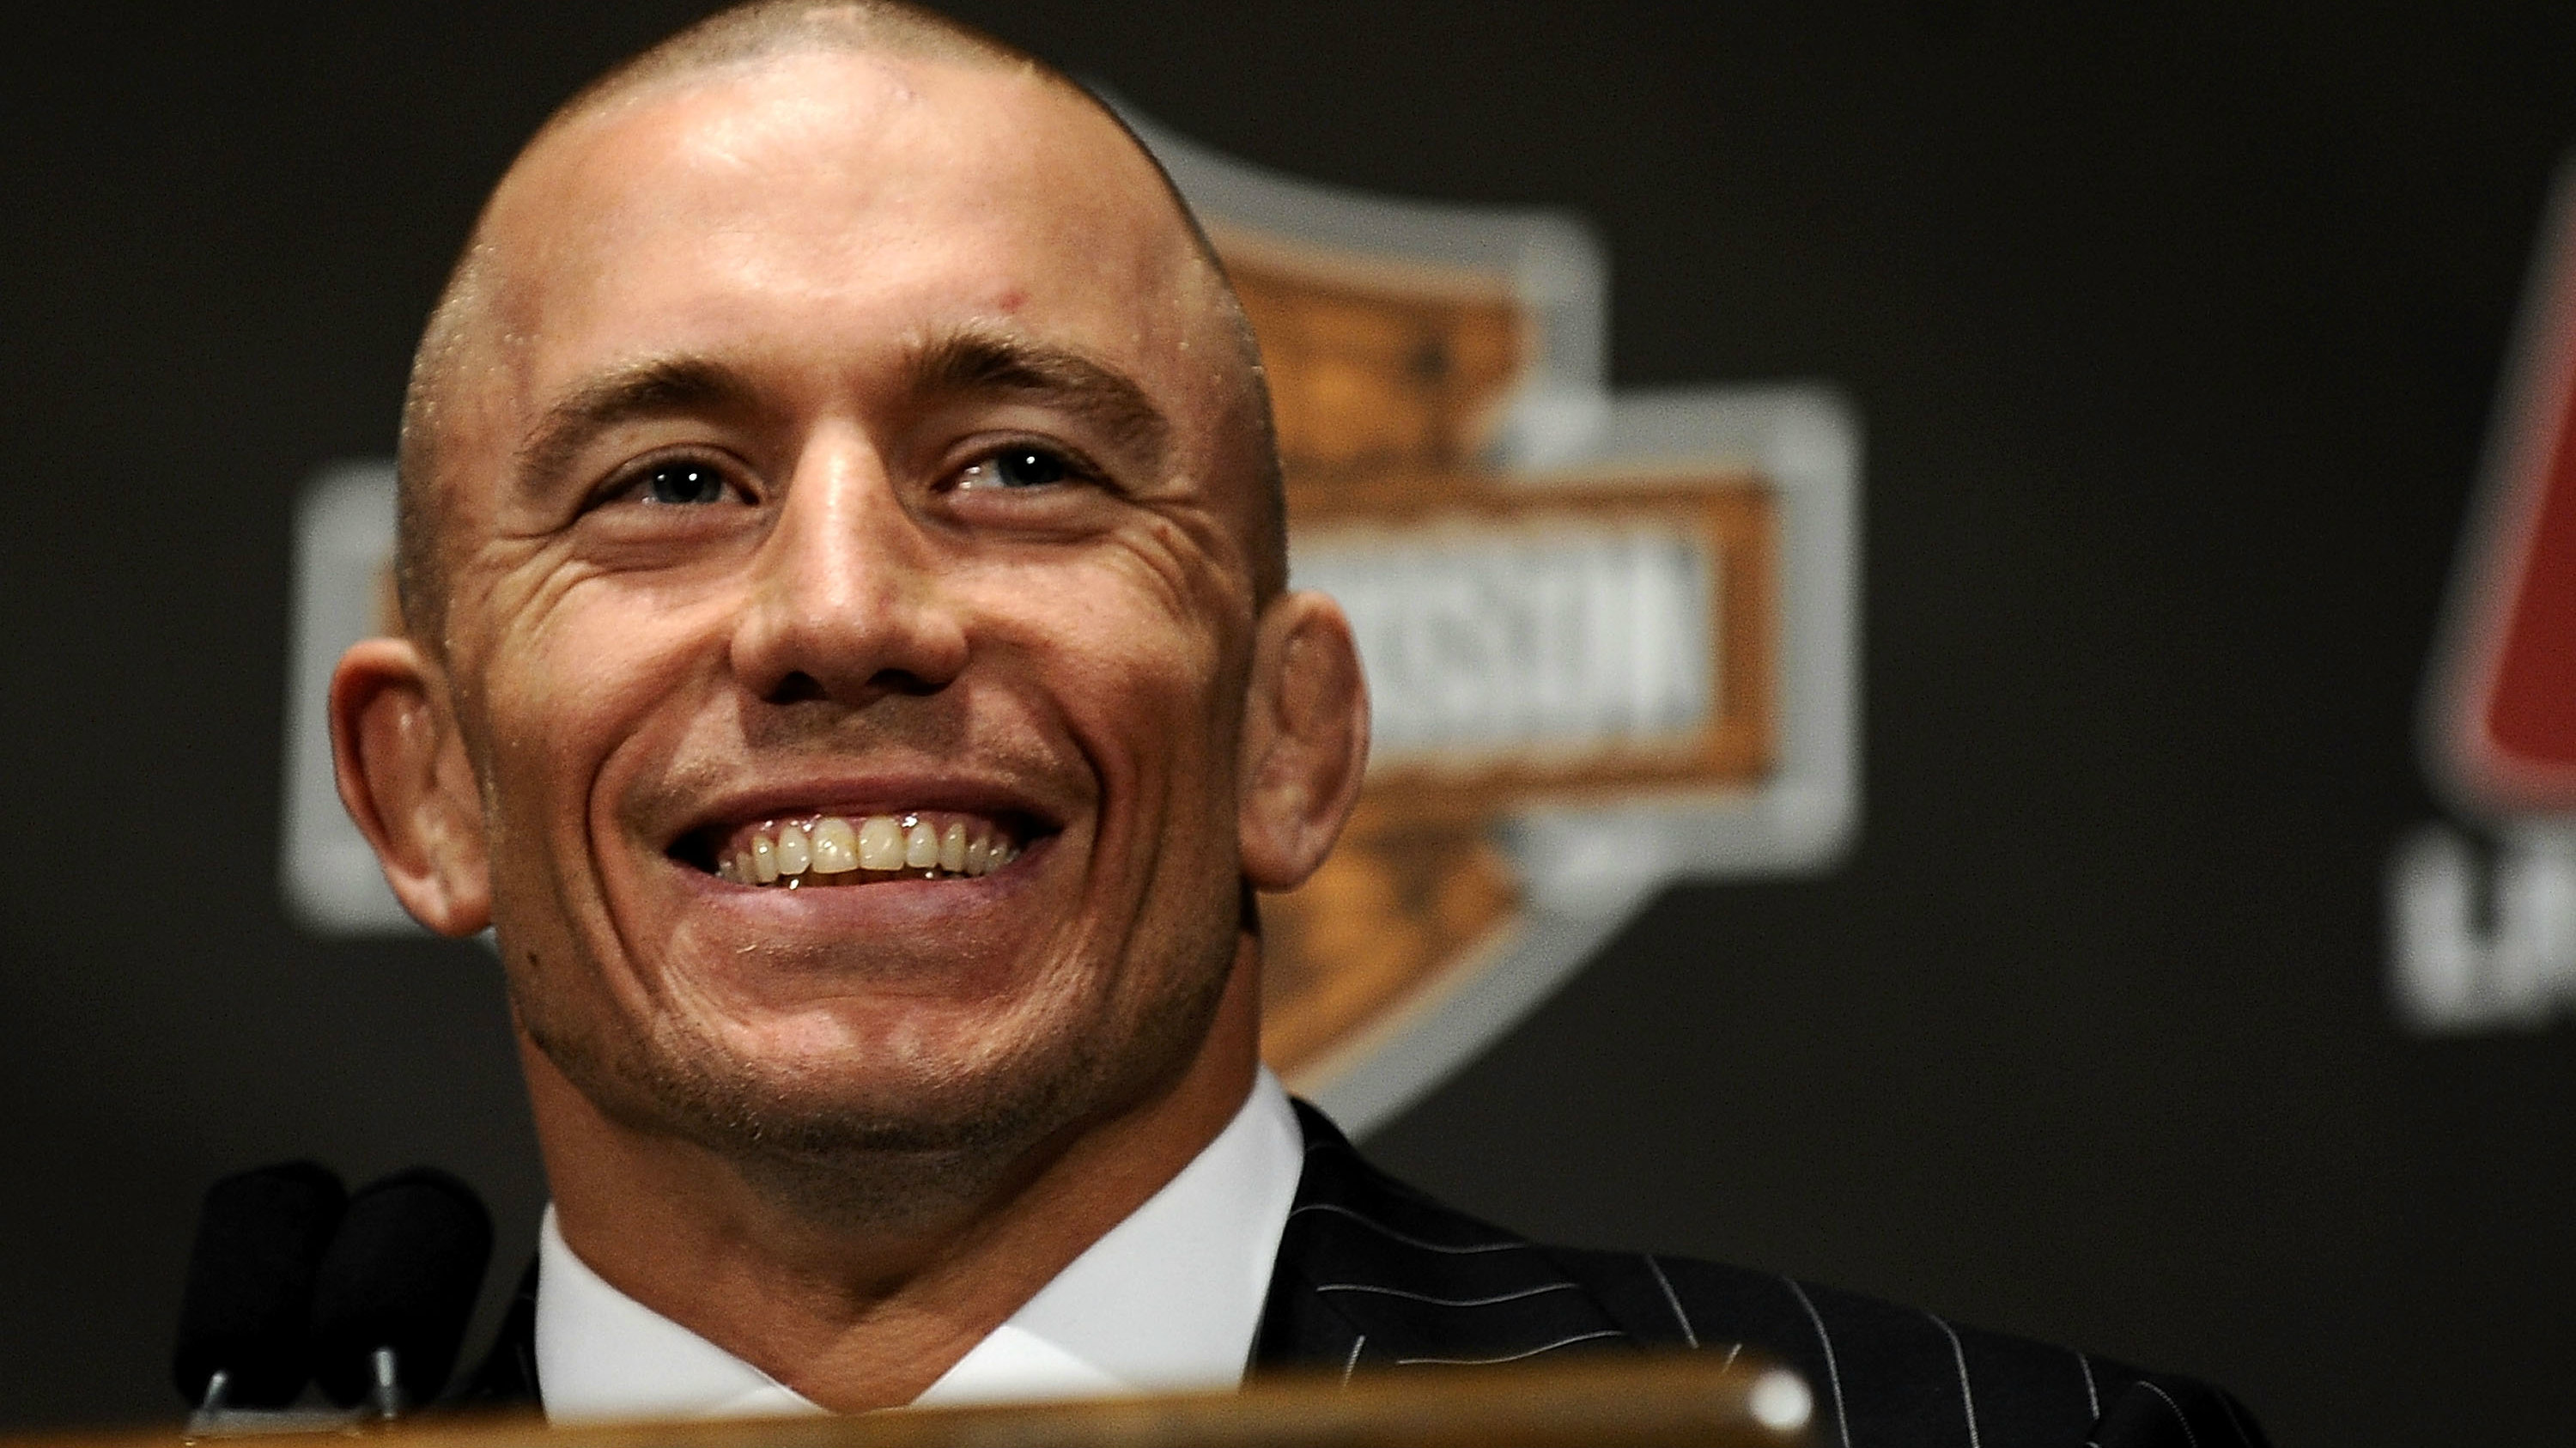 Dana White on Georges St-Pierre: 'He's back. I'm excited'